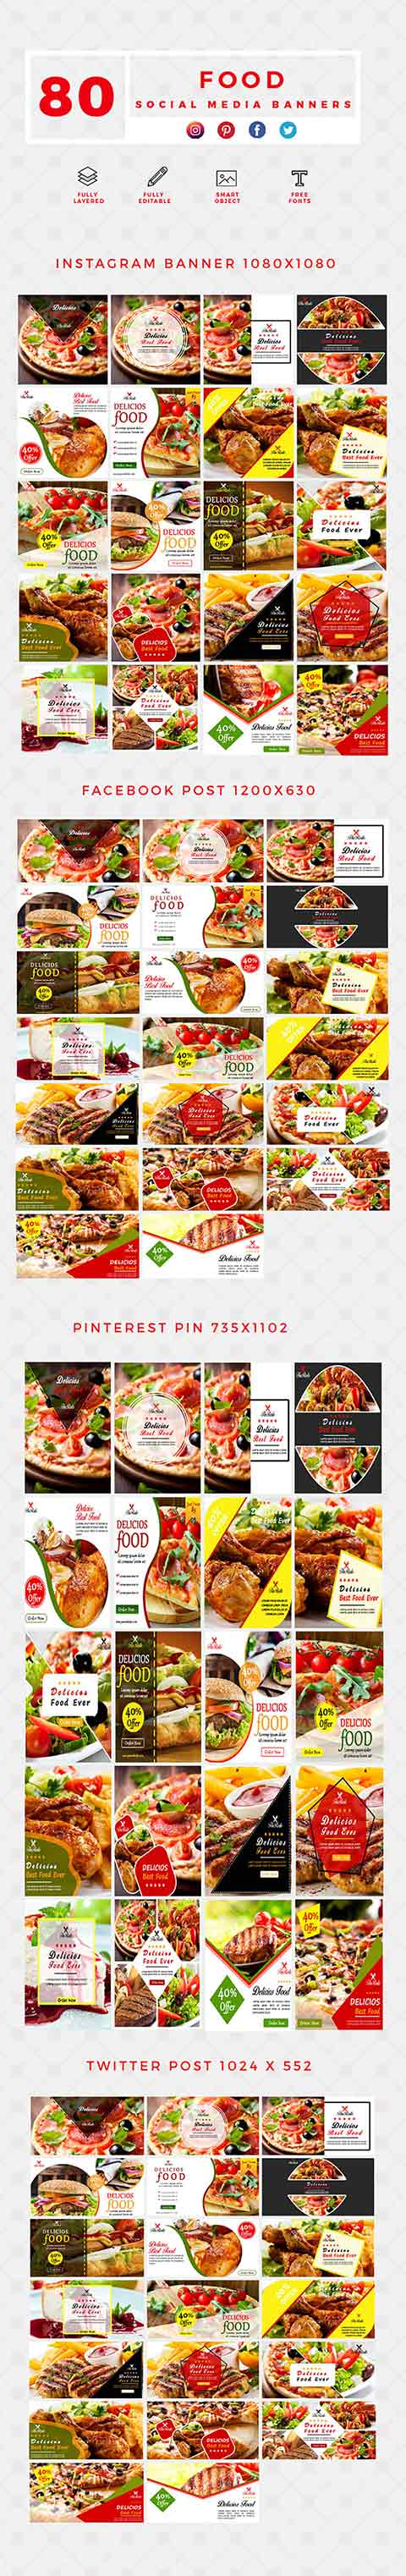 640 Social Media Banner Templates Bundle PREVIEW-FOOD